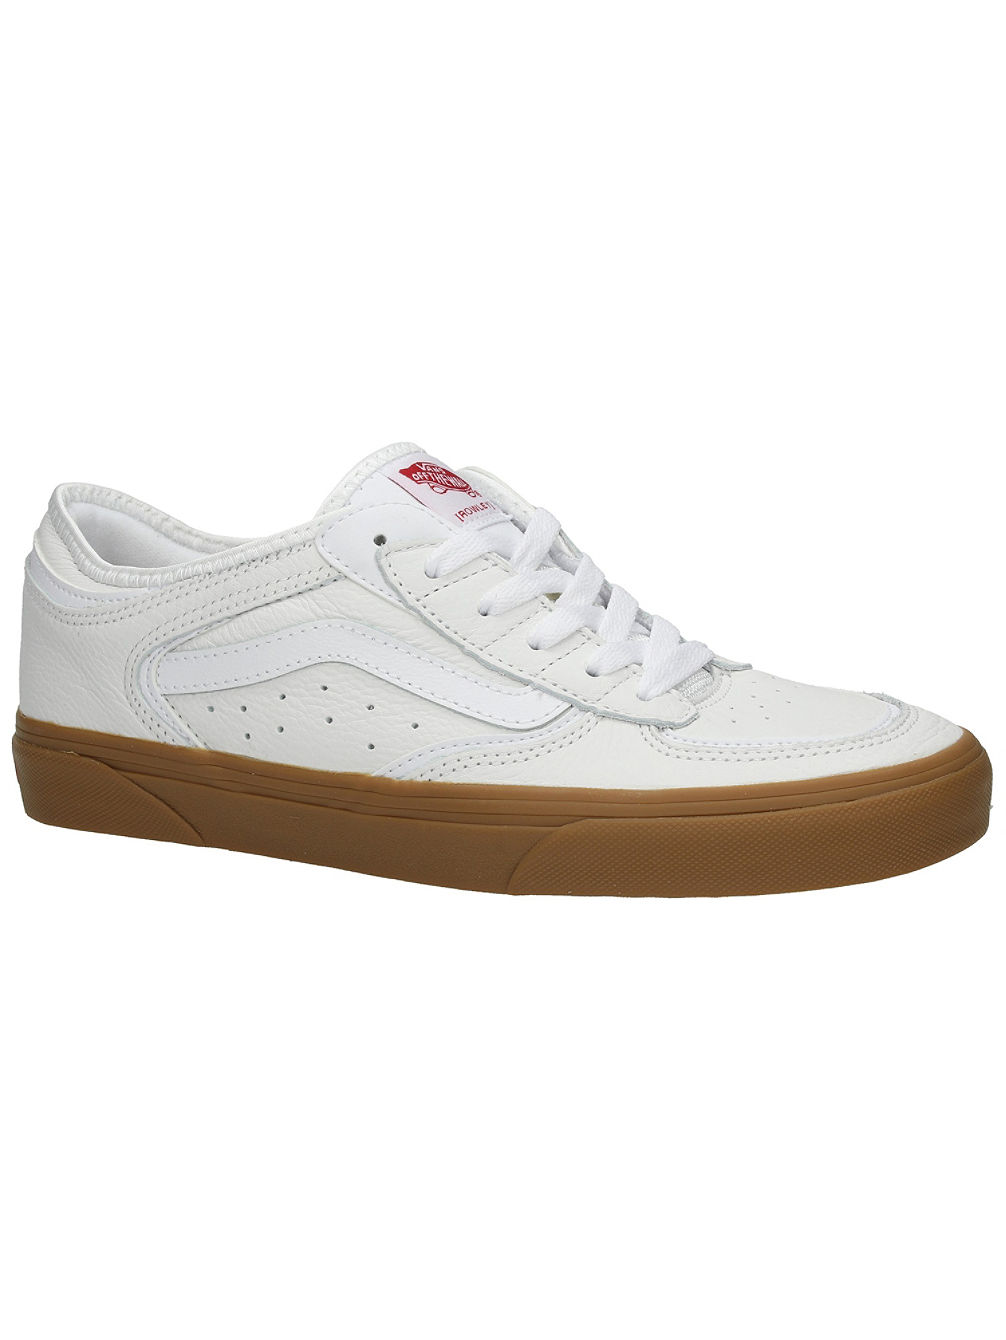 Rowley Classic Sneakers